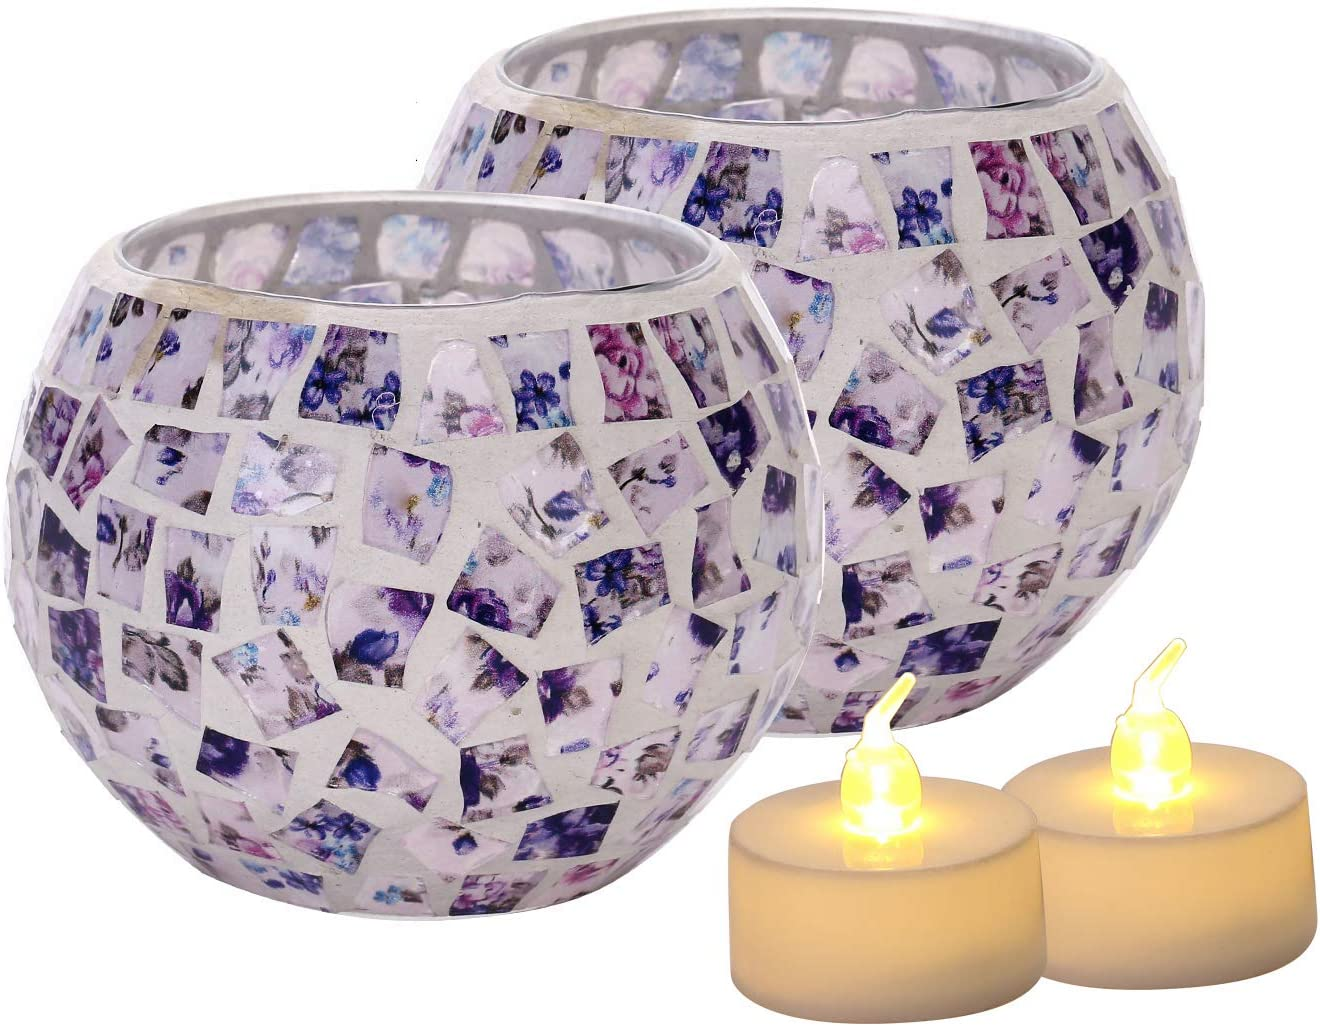 Votive Candle Holder Centerpiece, Mosaic Glass Tealight Holders for Home Decor, Table, Party Decorations, Handmade Gifts for Her, Vase for Potted Plants Bowl, Set of 2 (Purple Mosaic x 2)